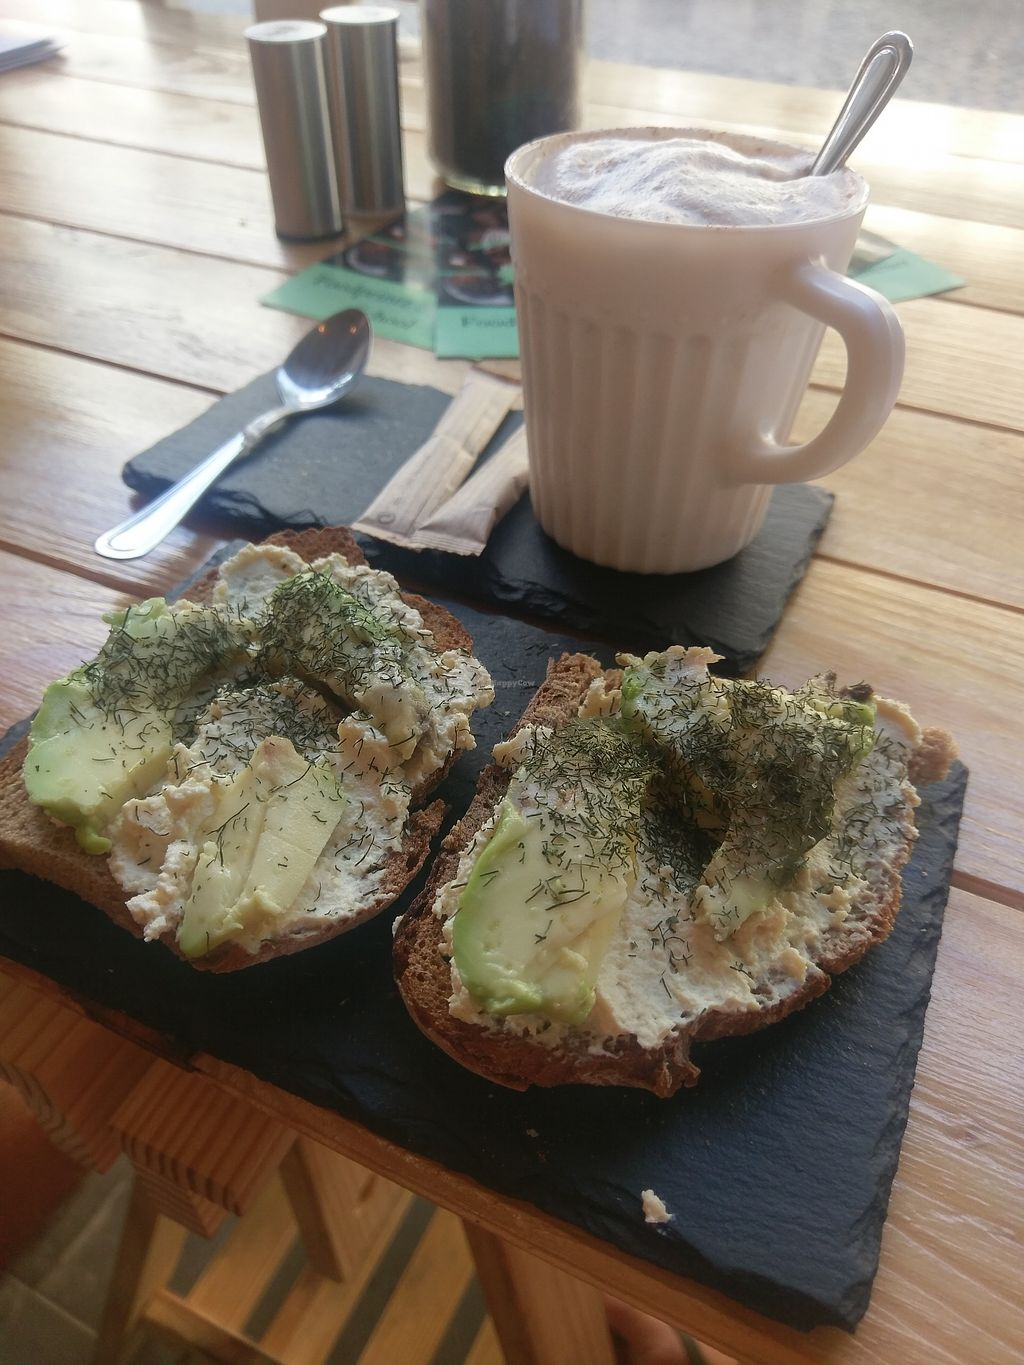 """Photo of Foodprintz Cafe  by <a href=""""/members/profile/Teele"""">Teele</a> <br/>Avocado toast <br/> August 28, 2017  - <a href='/contact/abuse/image/81313/298357'>Report</a>"""